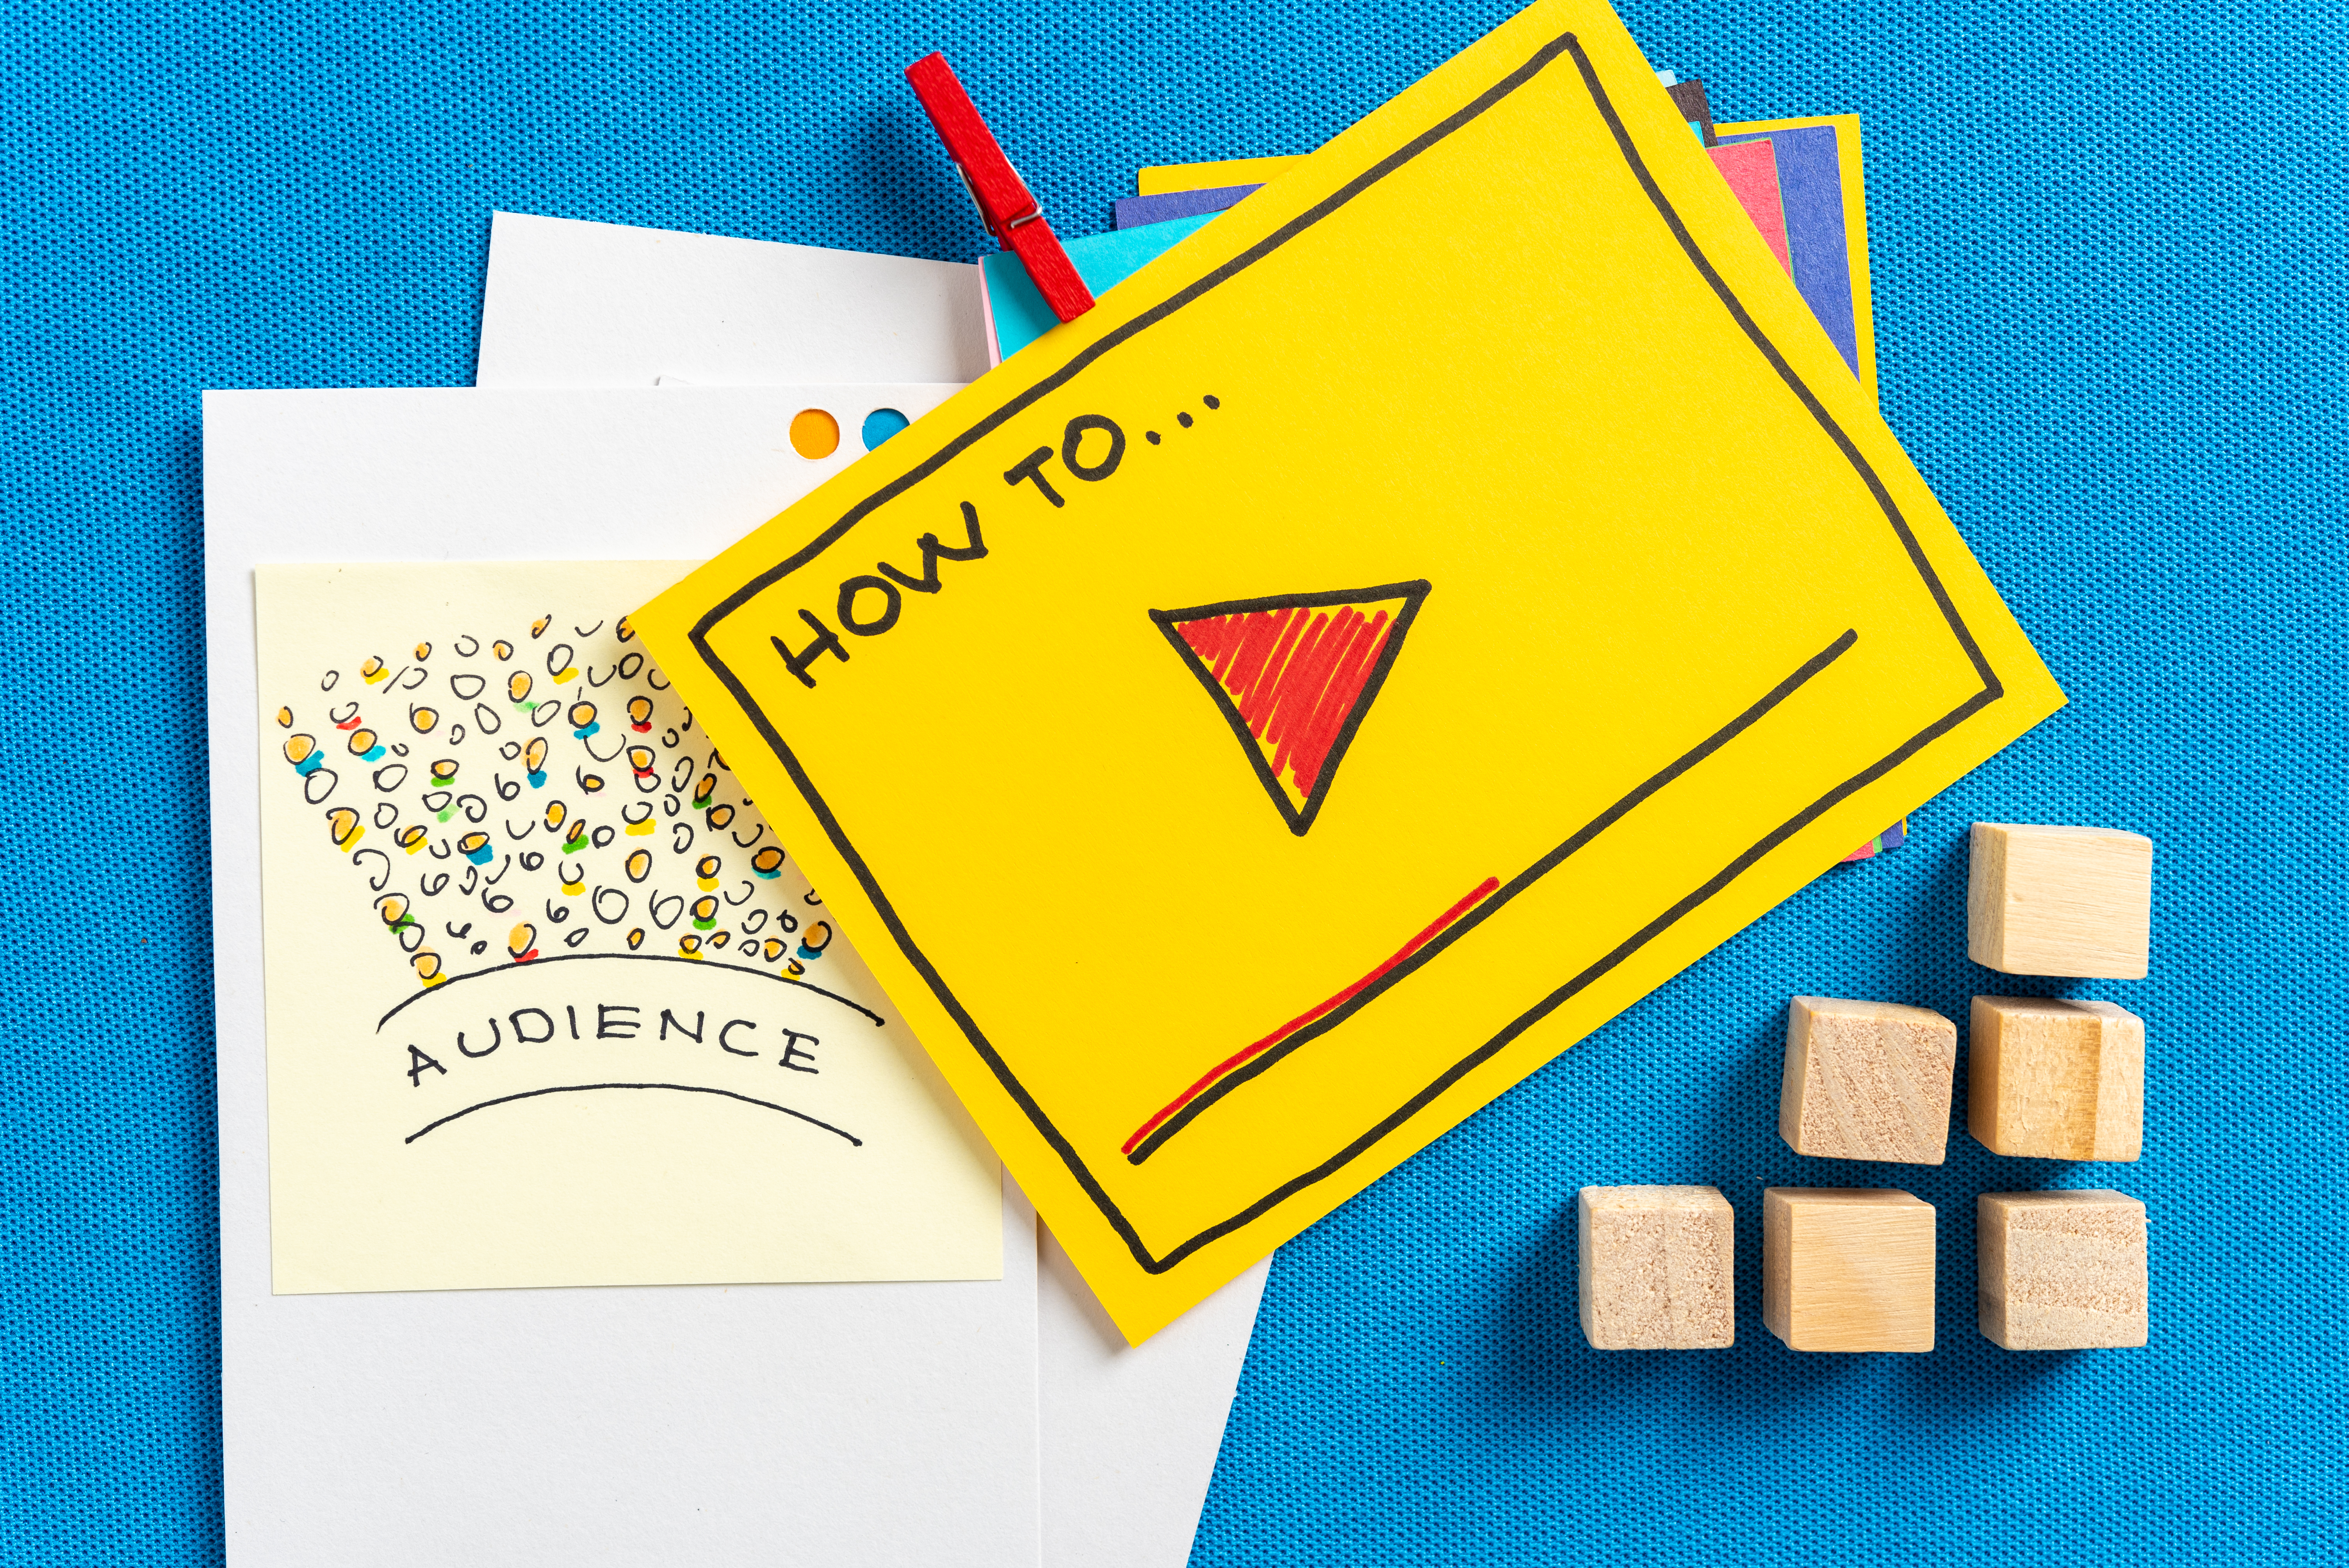 Stationary depicting how to reach an audience